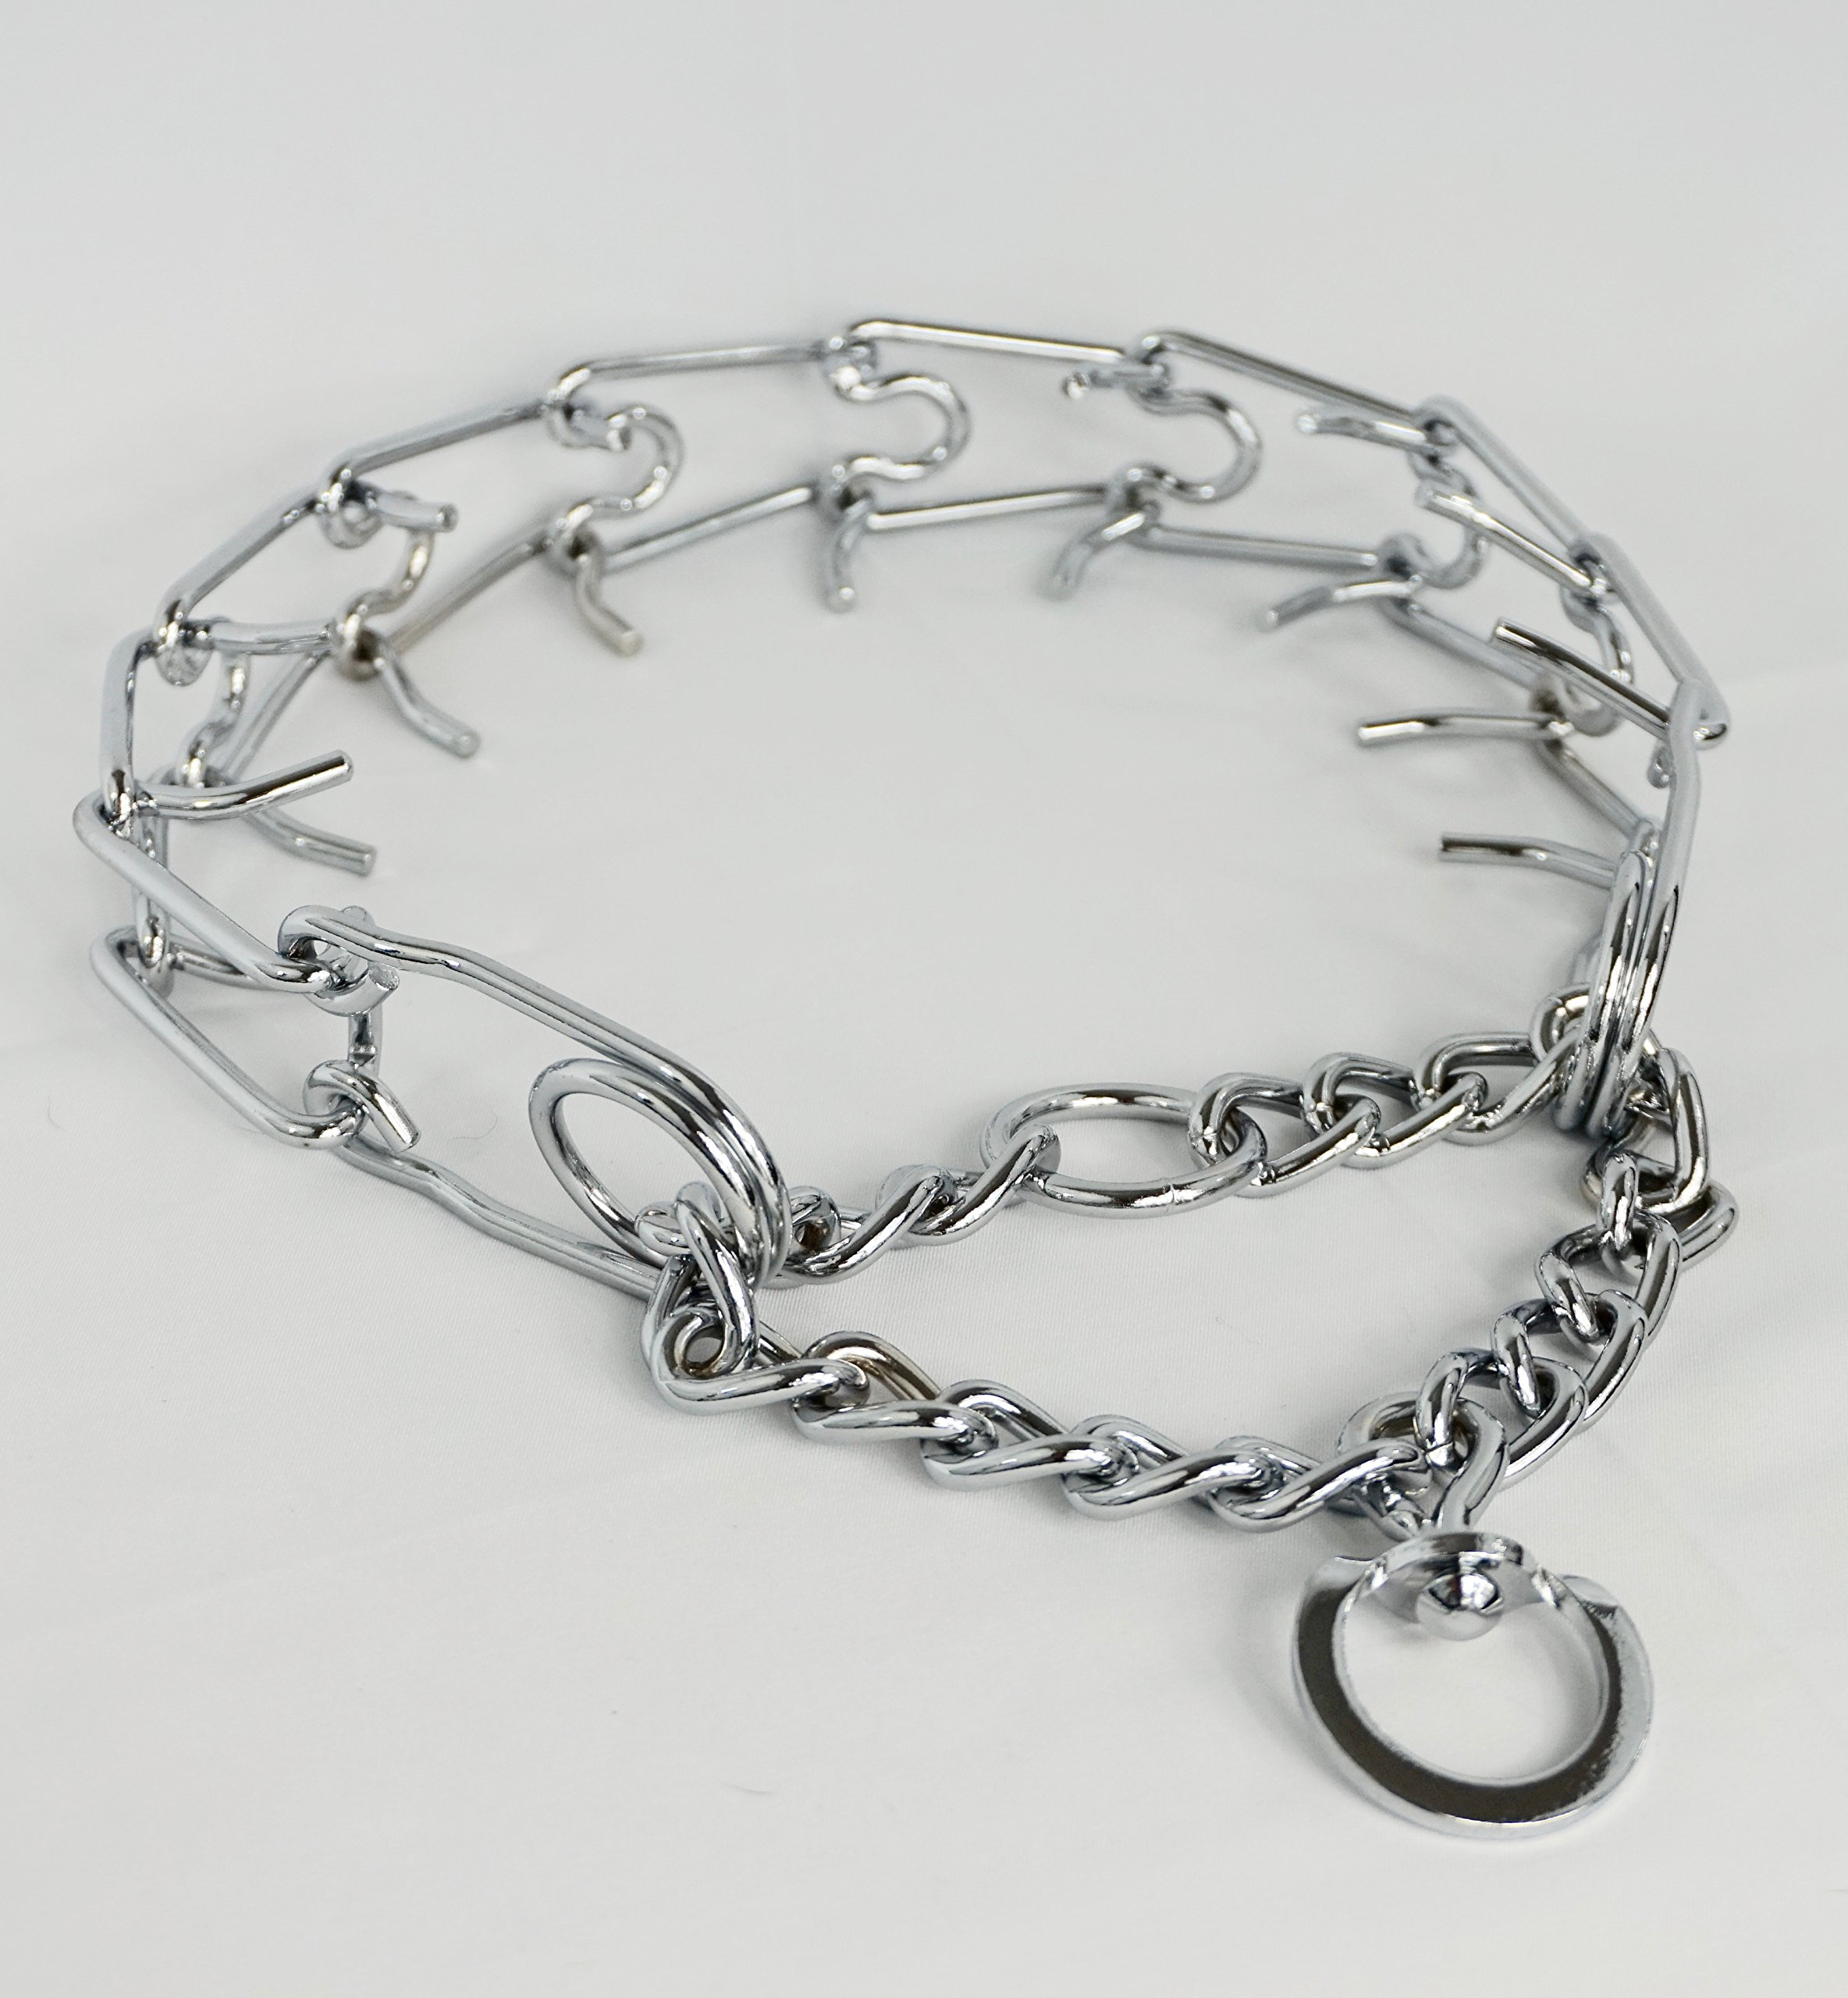 Dog-Thing It's a Dog Training Prong Collar (Large), Metal Collar Large Dog Obedience Training. Better Than a Choke Chain Other Dog Collars Dog Walking by Dog-Thing